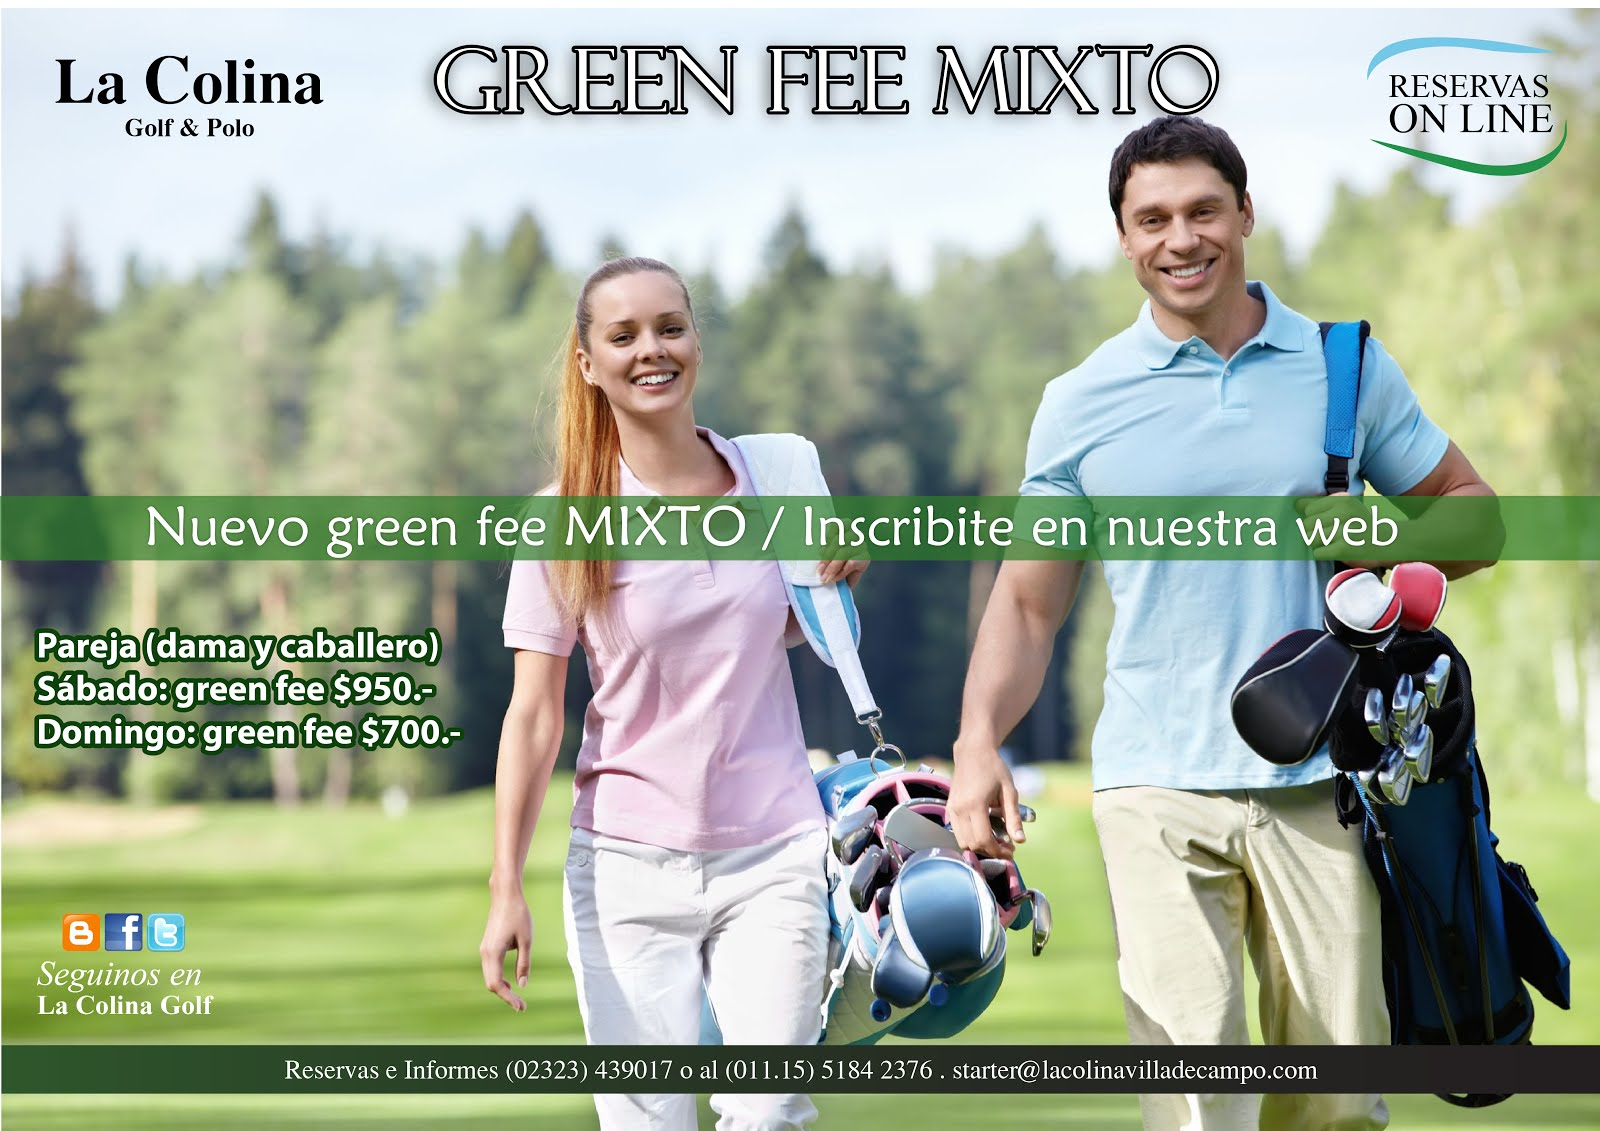 GREEN FEE MIXTO